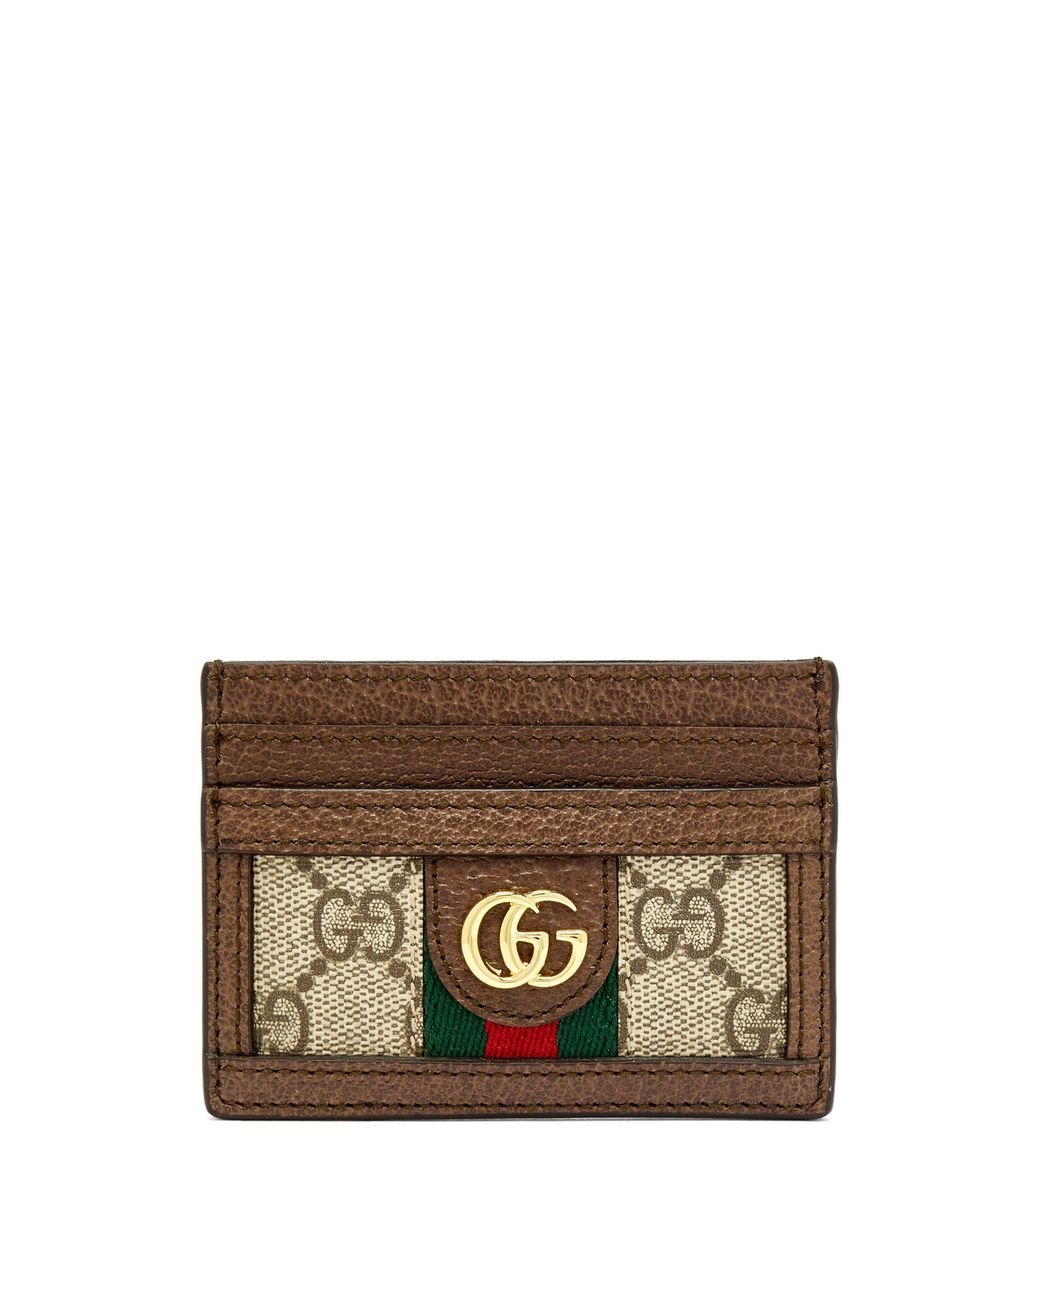 0084c3ec2cc Gucci. Women s Ophidia Textured Leather-trimmed Printed Coated-canvas  Cardholder